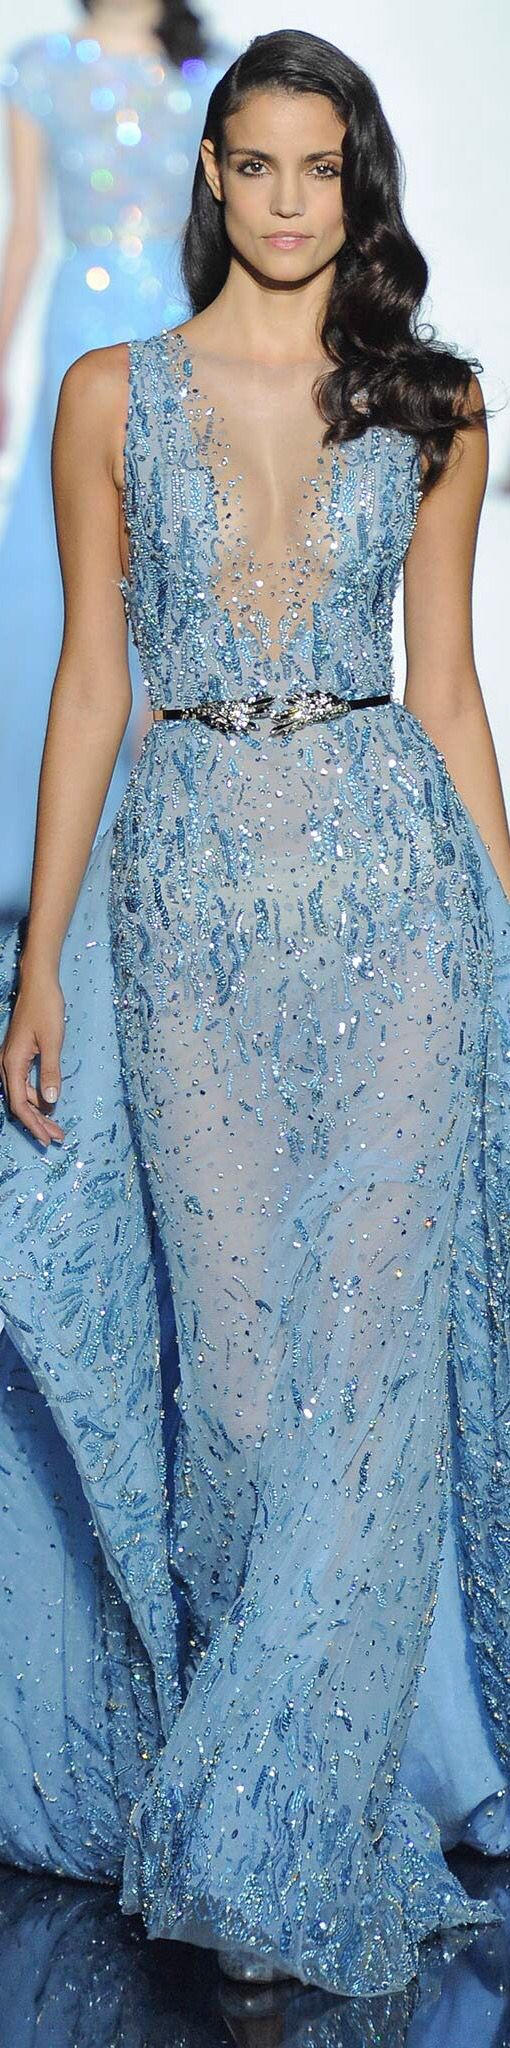 1199 best images about haute couture today on pinterest for Haute couture today